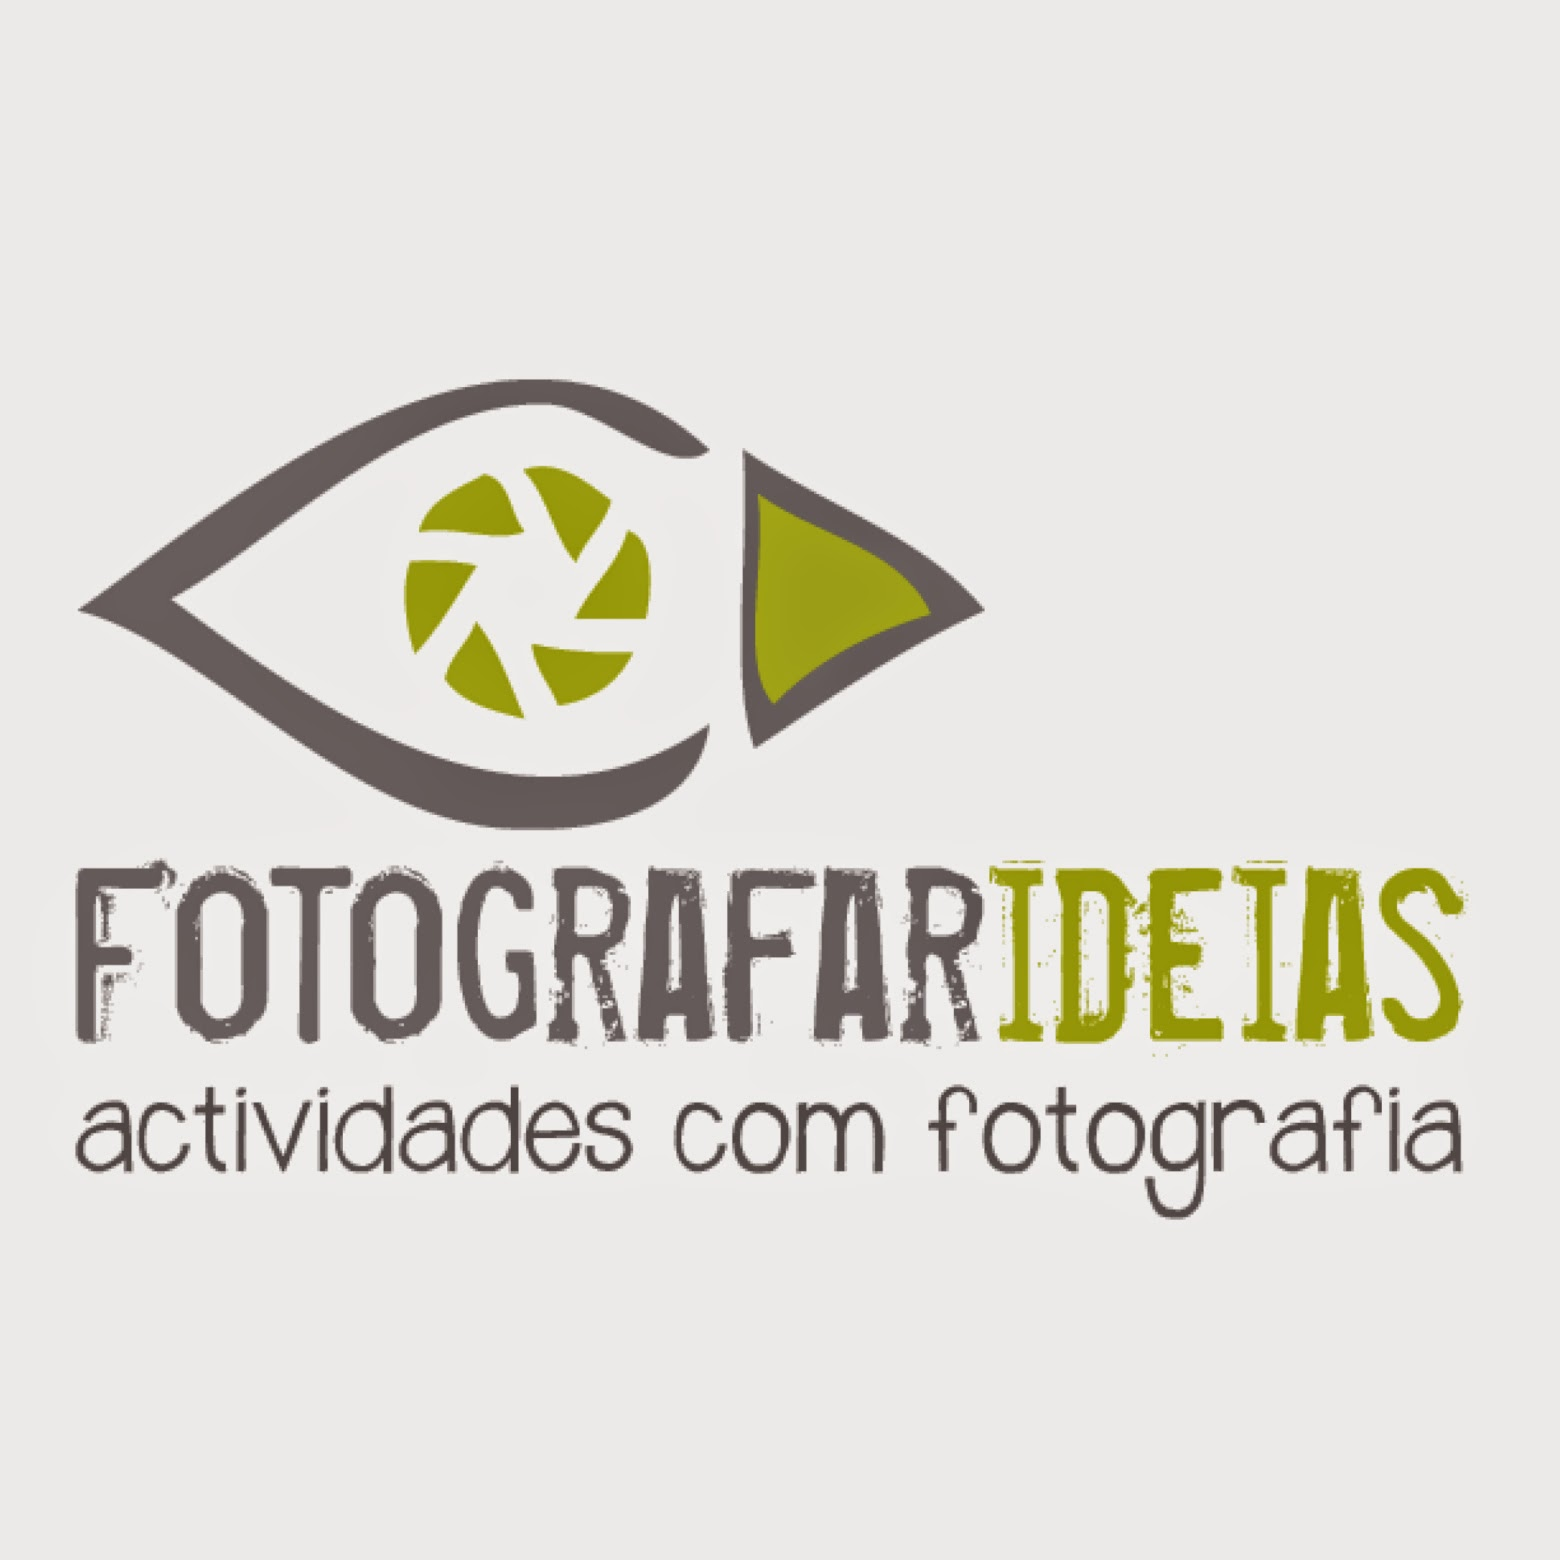 https://www.facebook.com/FotografarIdeias